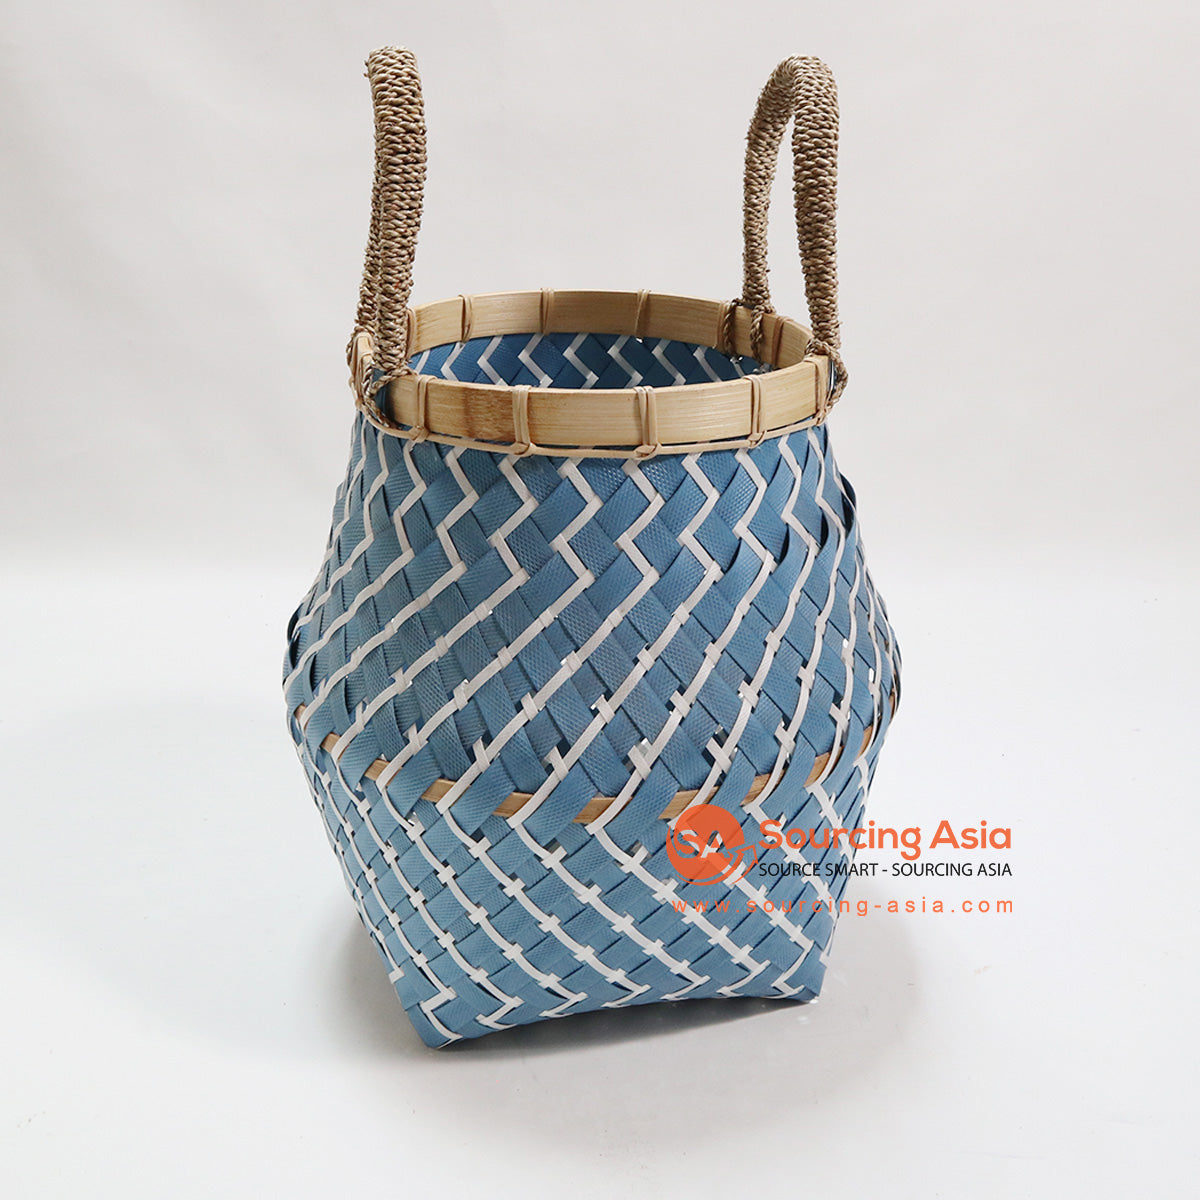 HBSC079 SYNTHETIC RATTAN BLUE AND WHITE BASKET